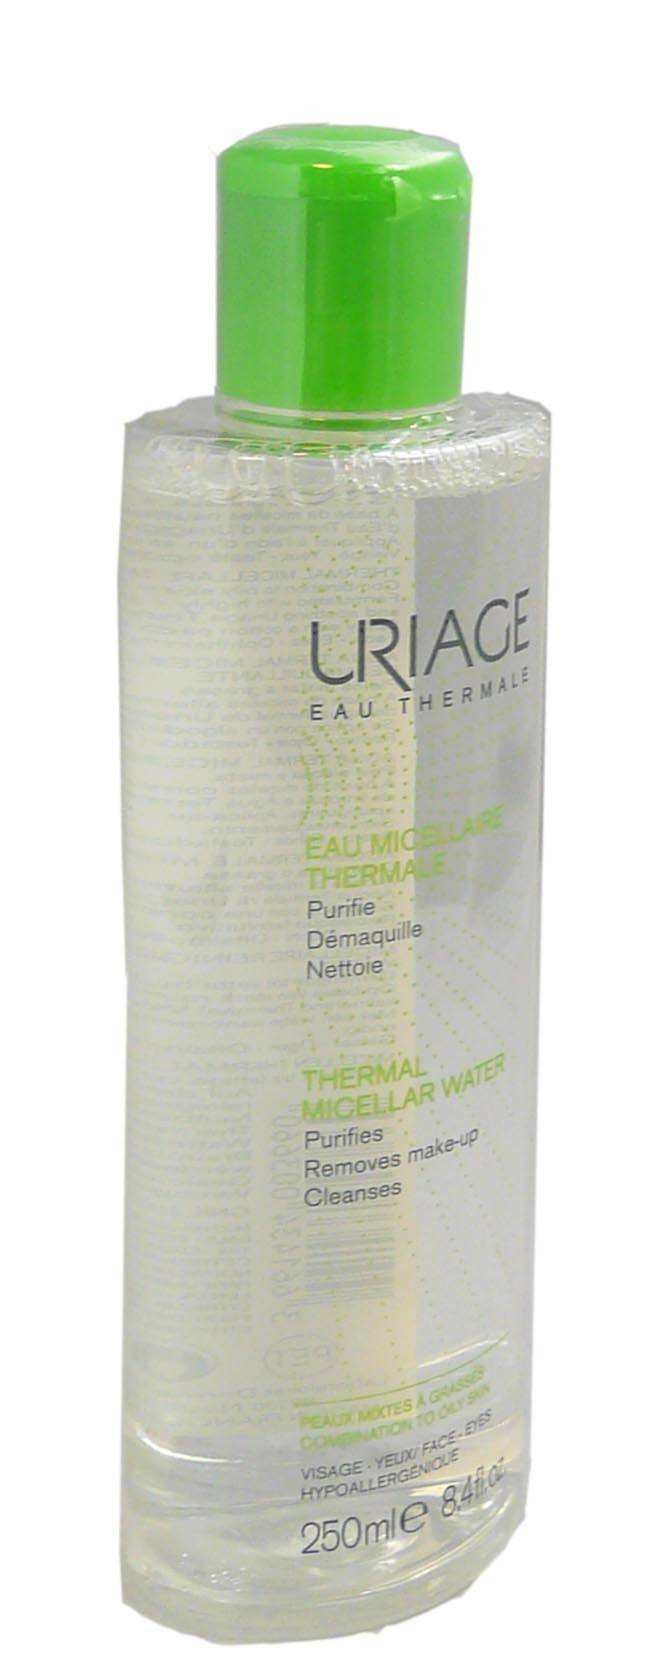 Uriage eau micellaire thermale mixte a grasse 250ml